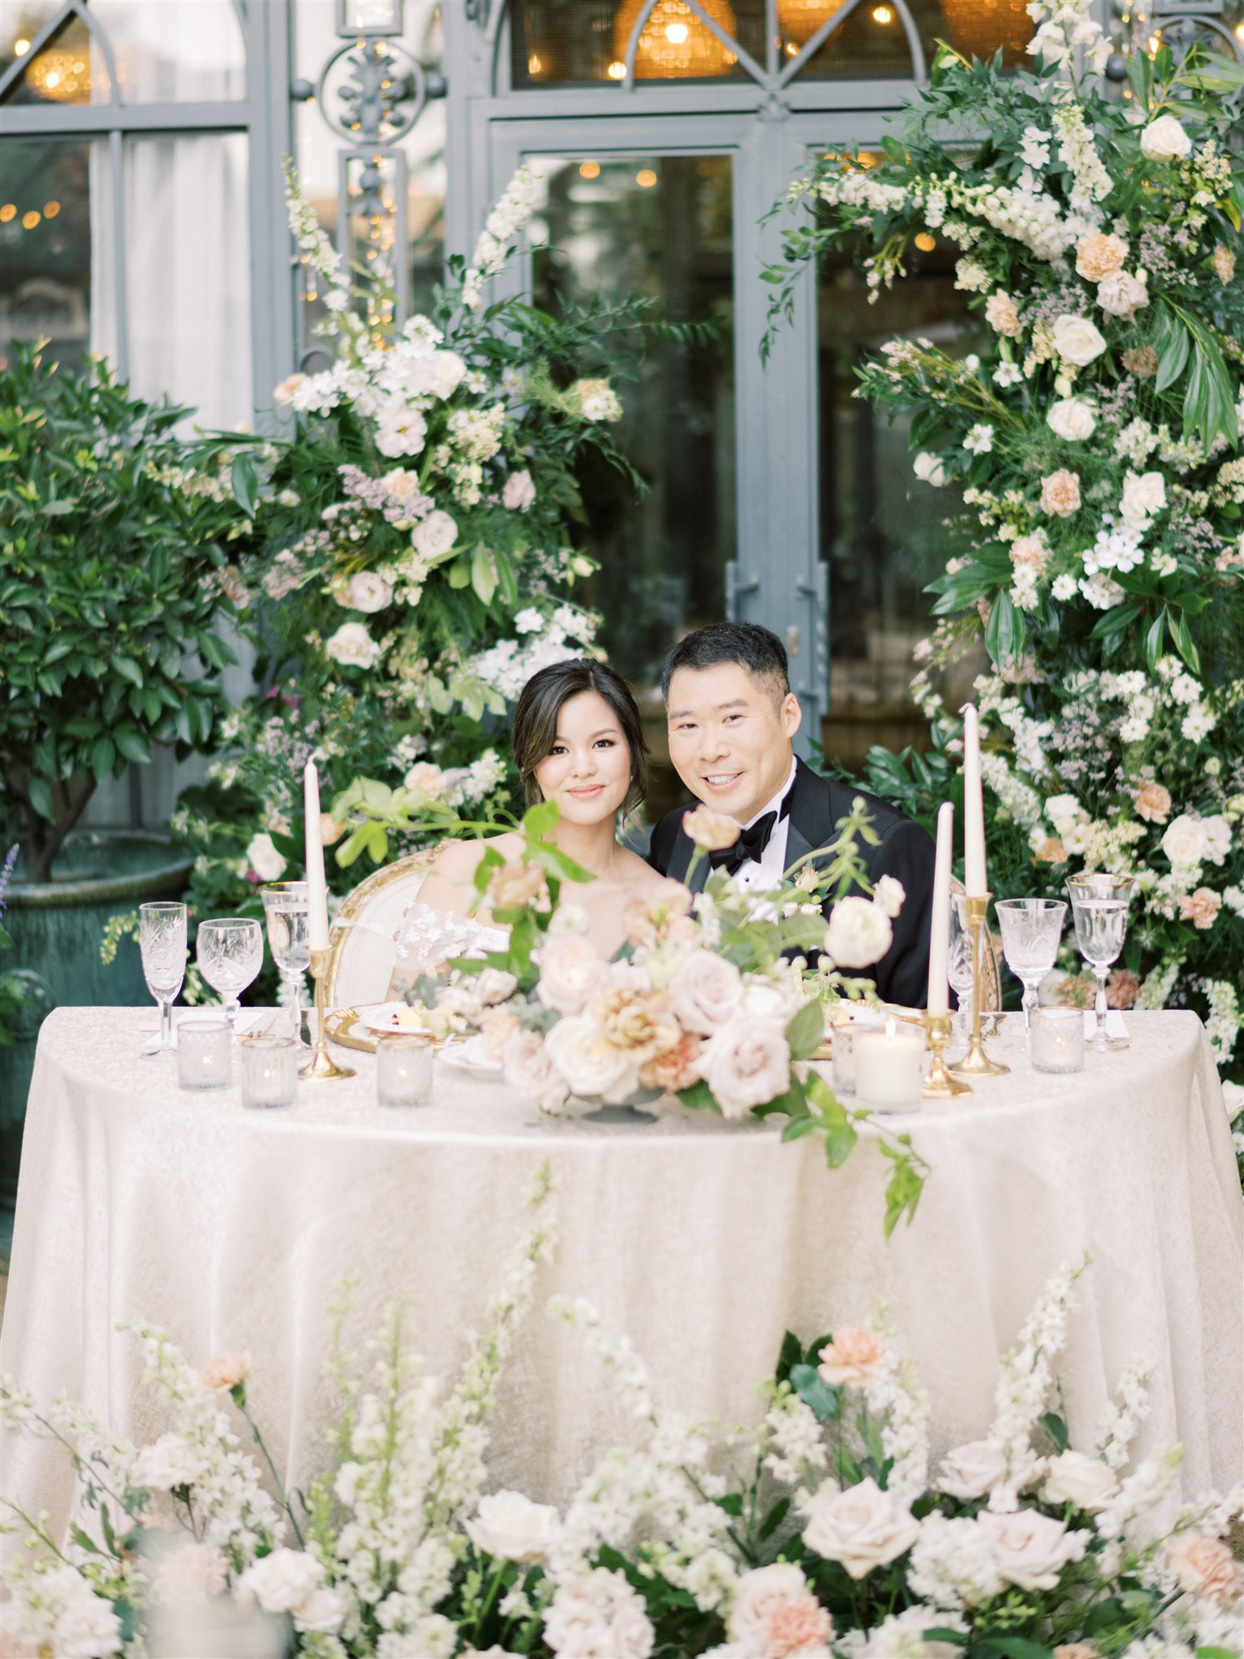 bride and groom smiling sitting at sweetheart table